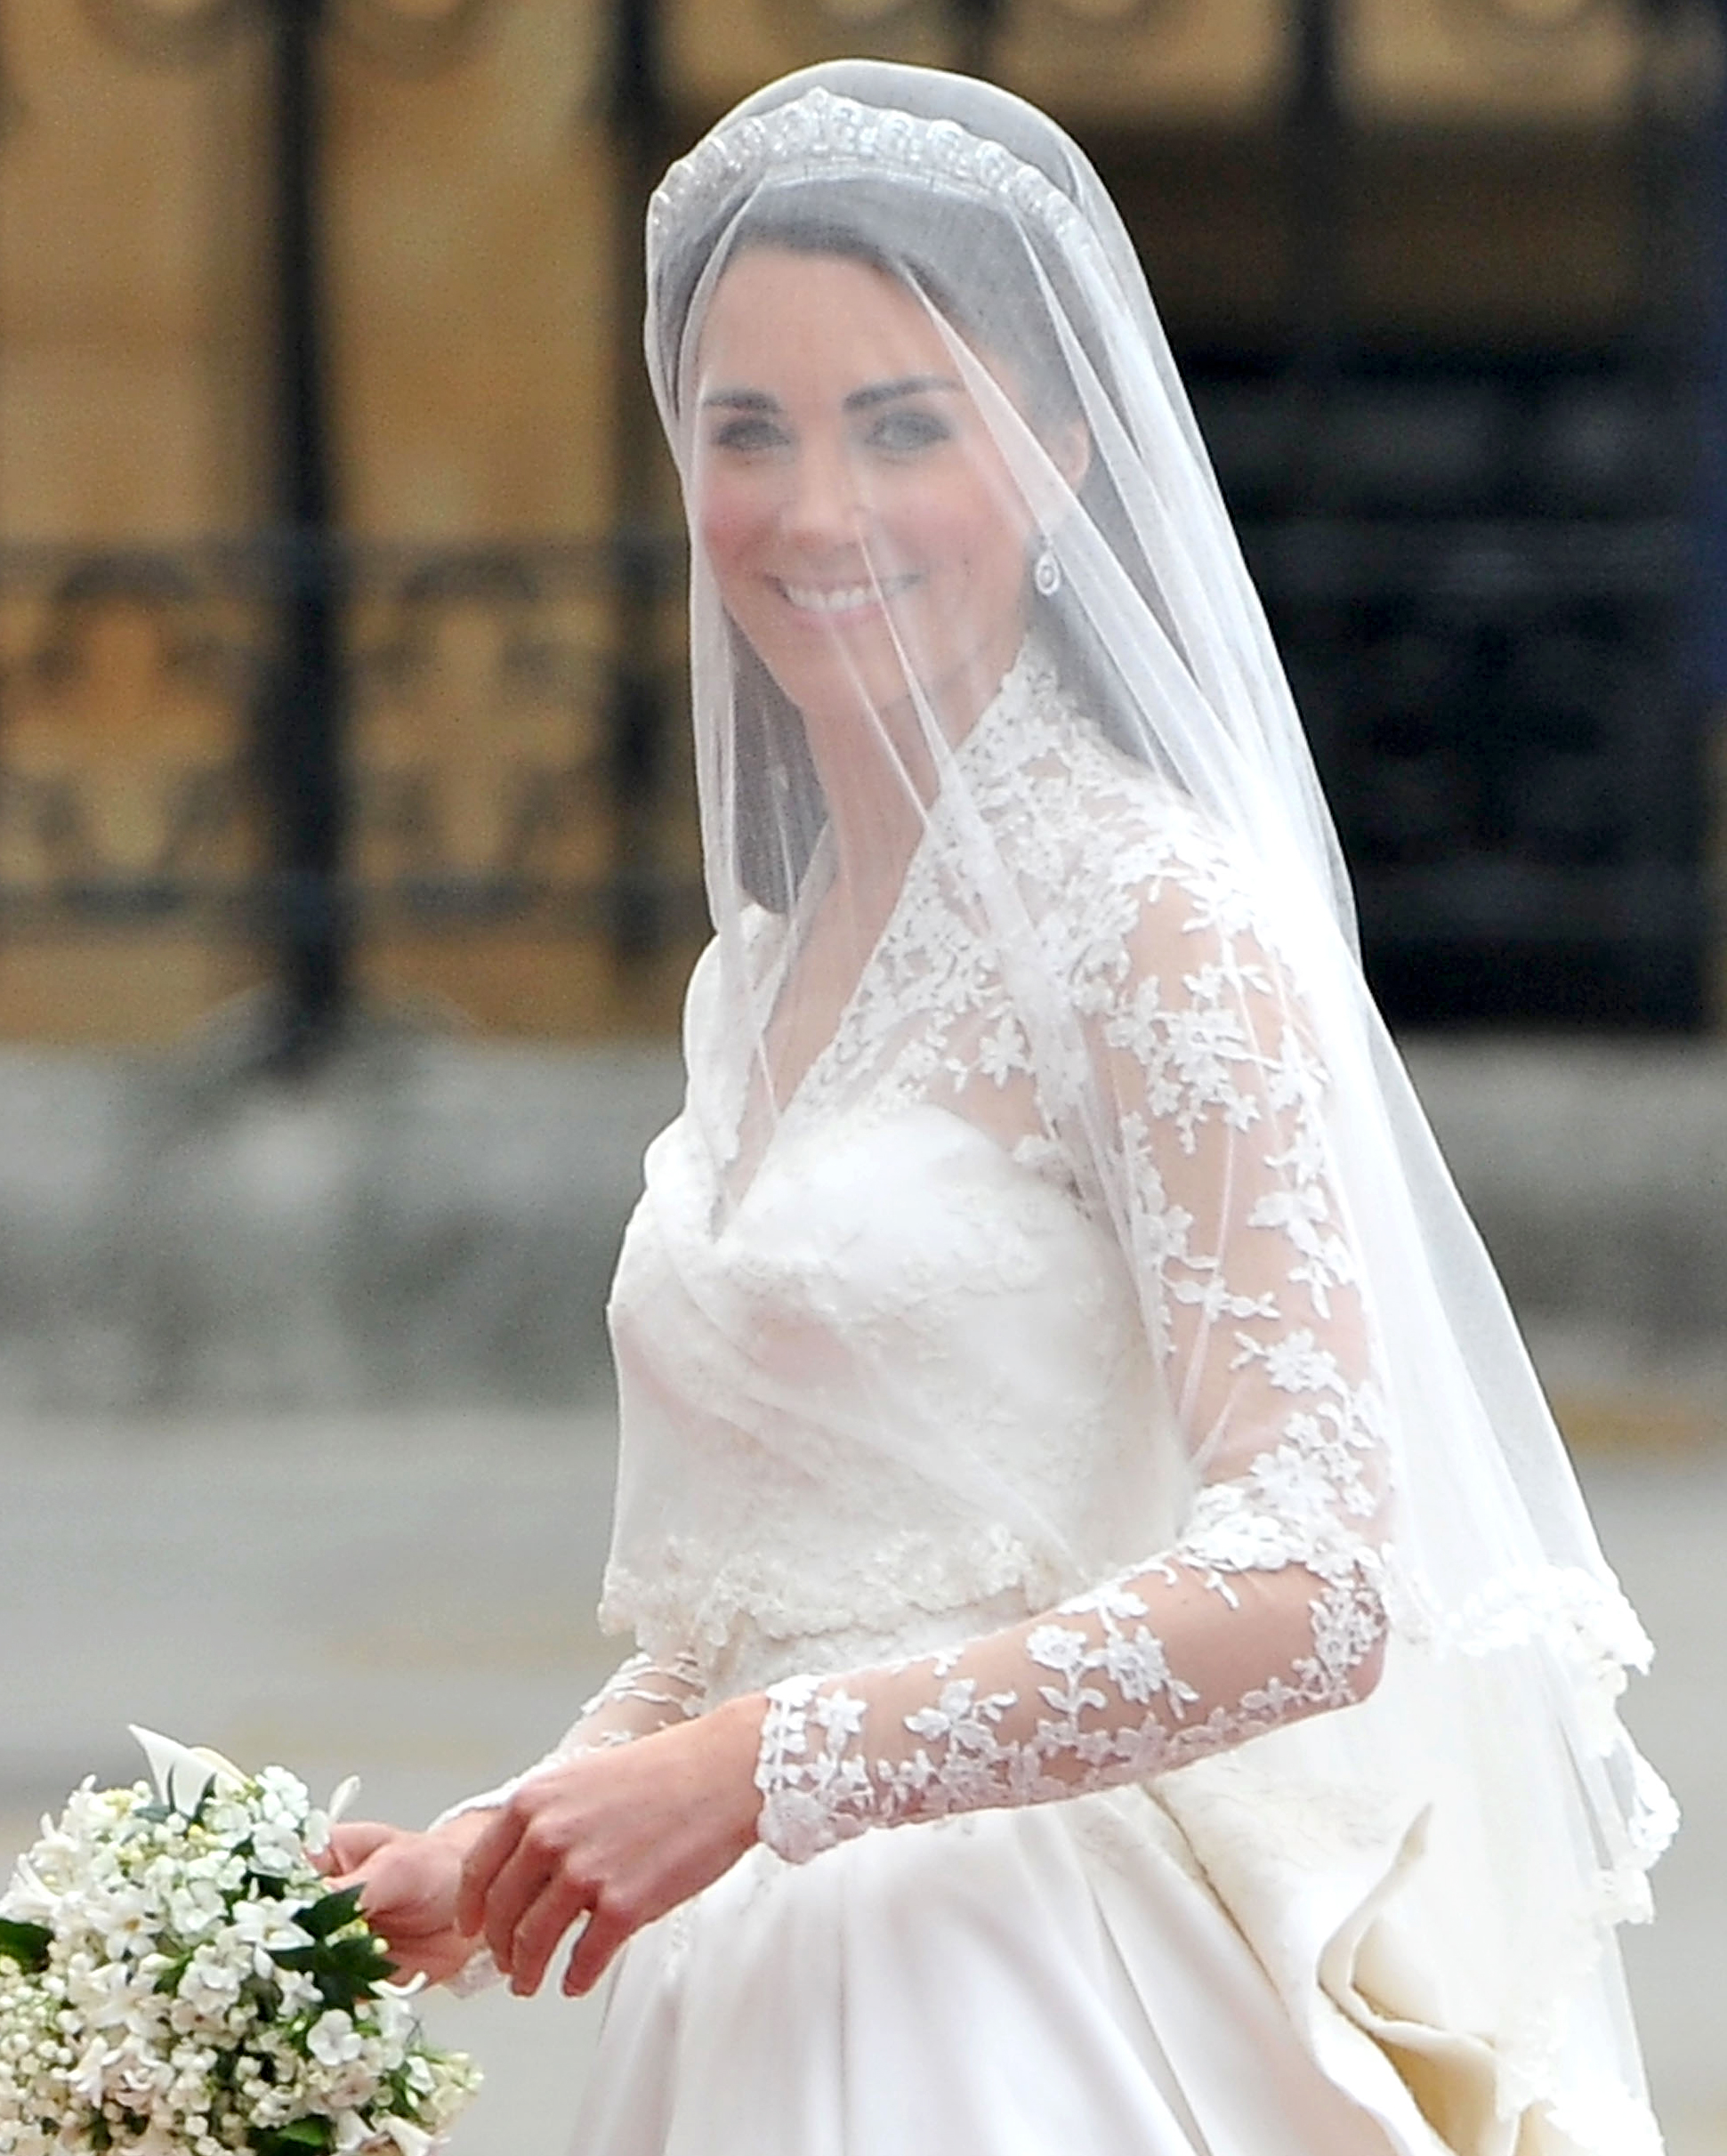 celebrity-brides-veils-kate-middleton-prince-william-0615.jpg